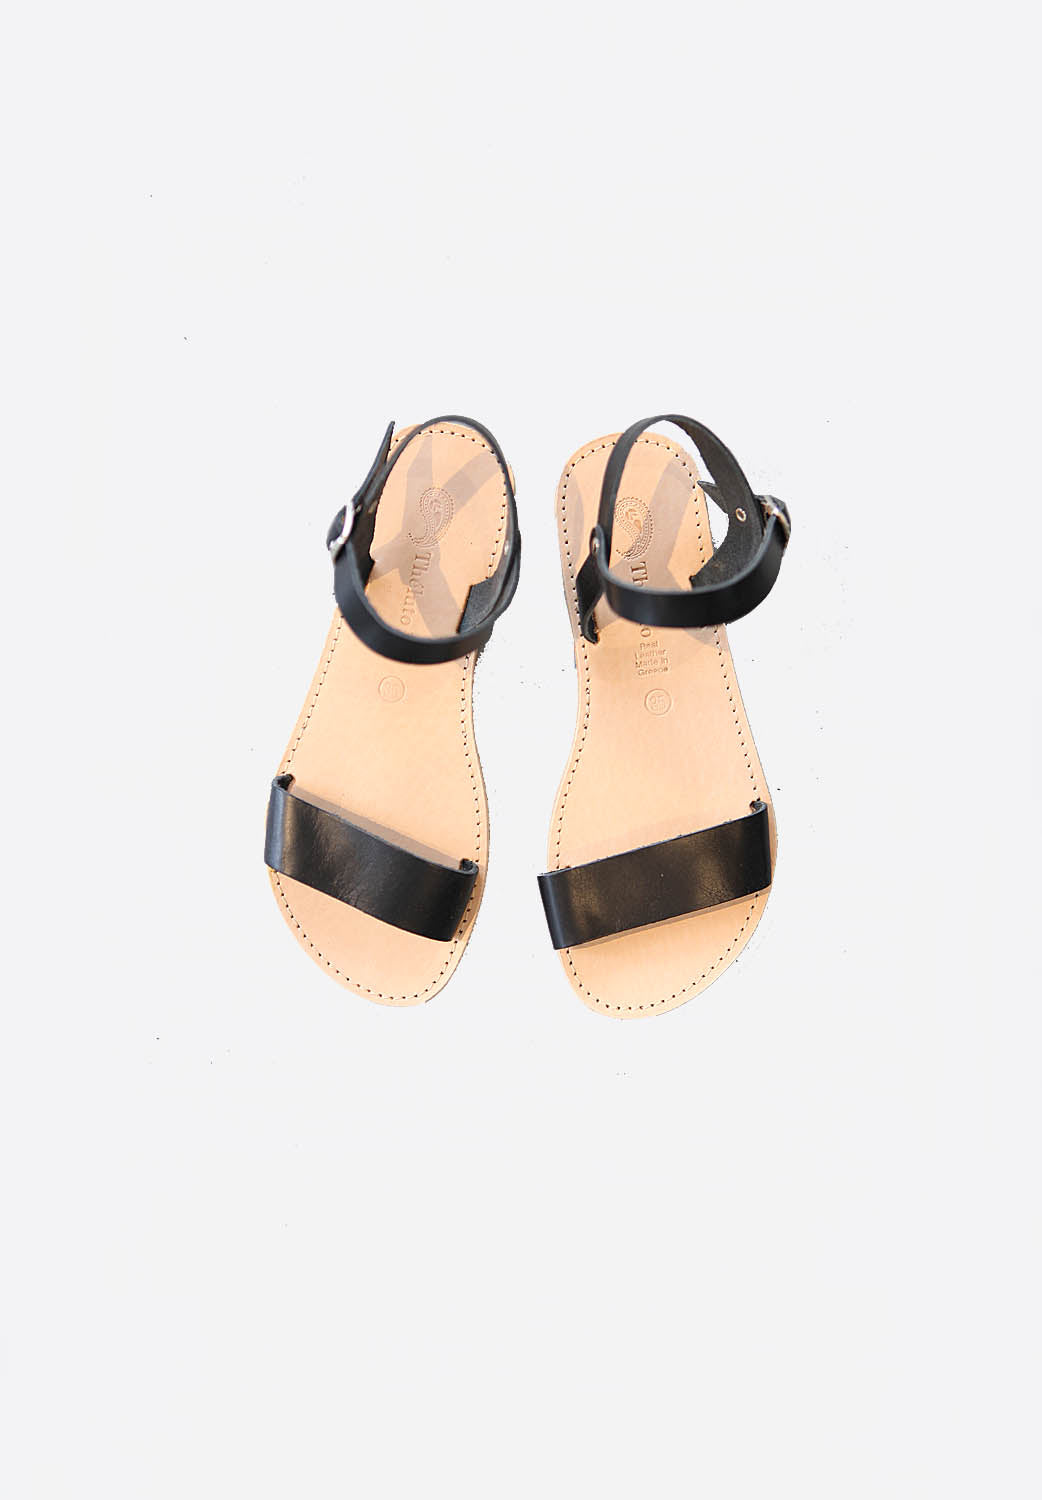 Https Daily Products 1 9 Clarette Sandals Crystal Brown Theluto Sandale Black 538cd70b 8af4 4cfb B9c9 Df1433ec5ed5v1523876797